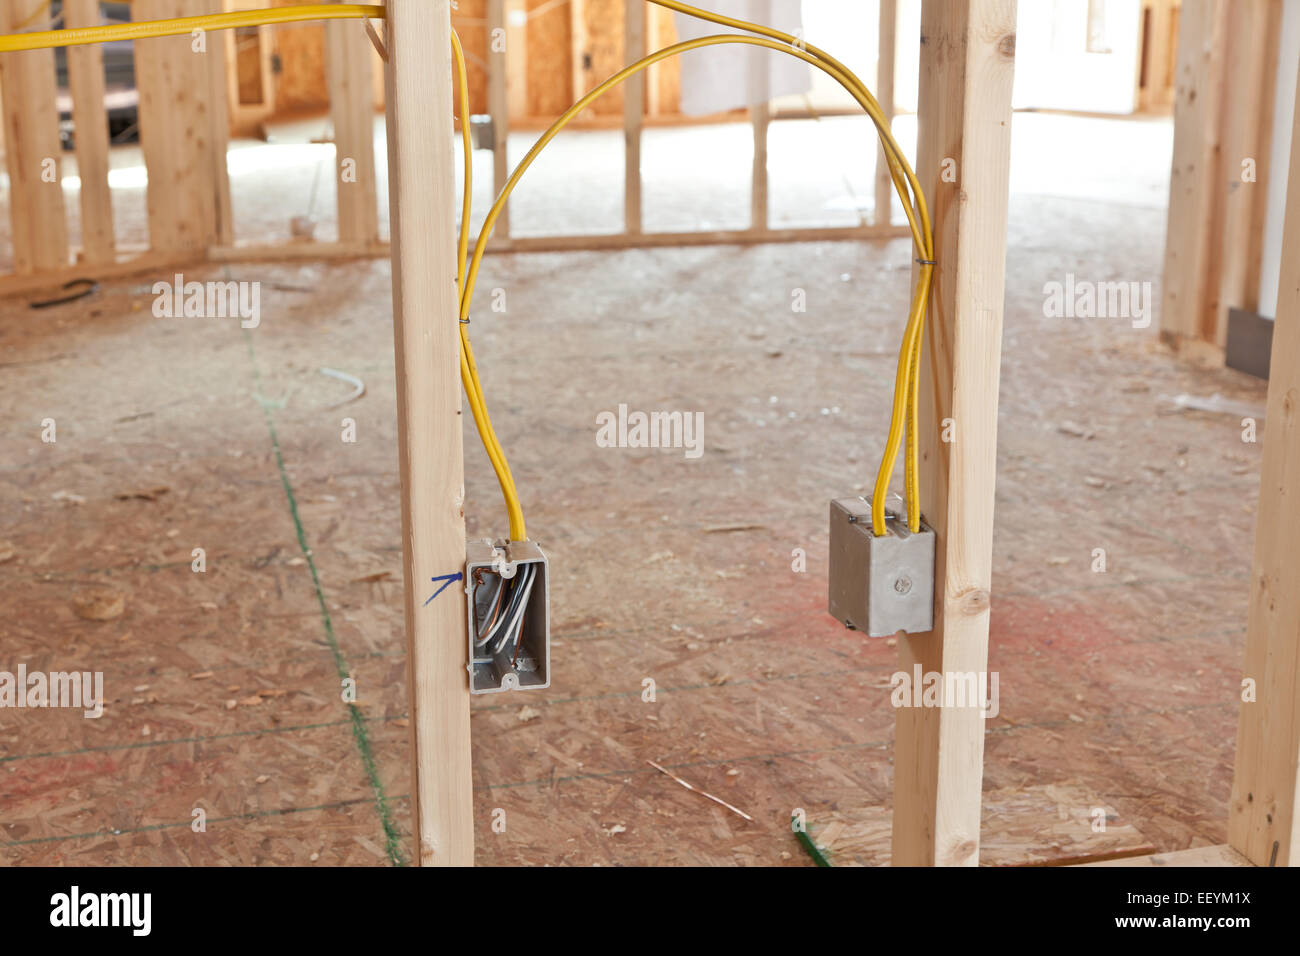 Electrical Wiring In New Home Construction Stock Photo 78055094 Alamy Plug